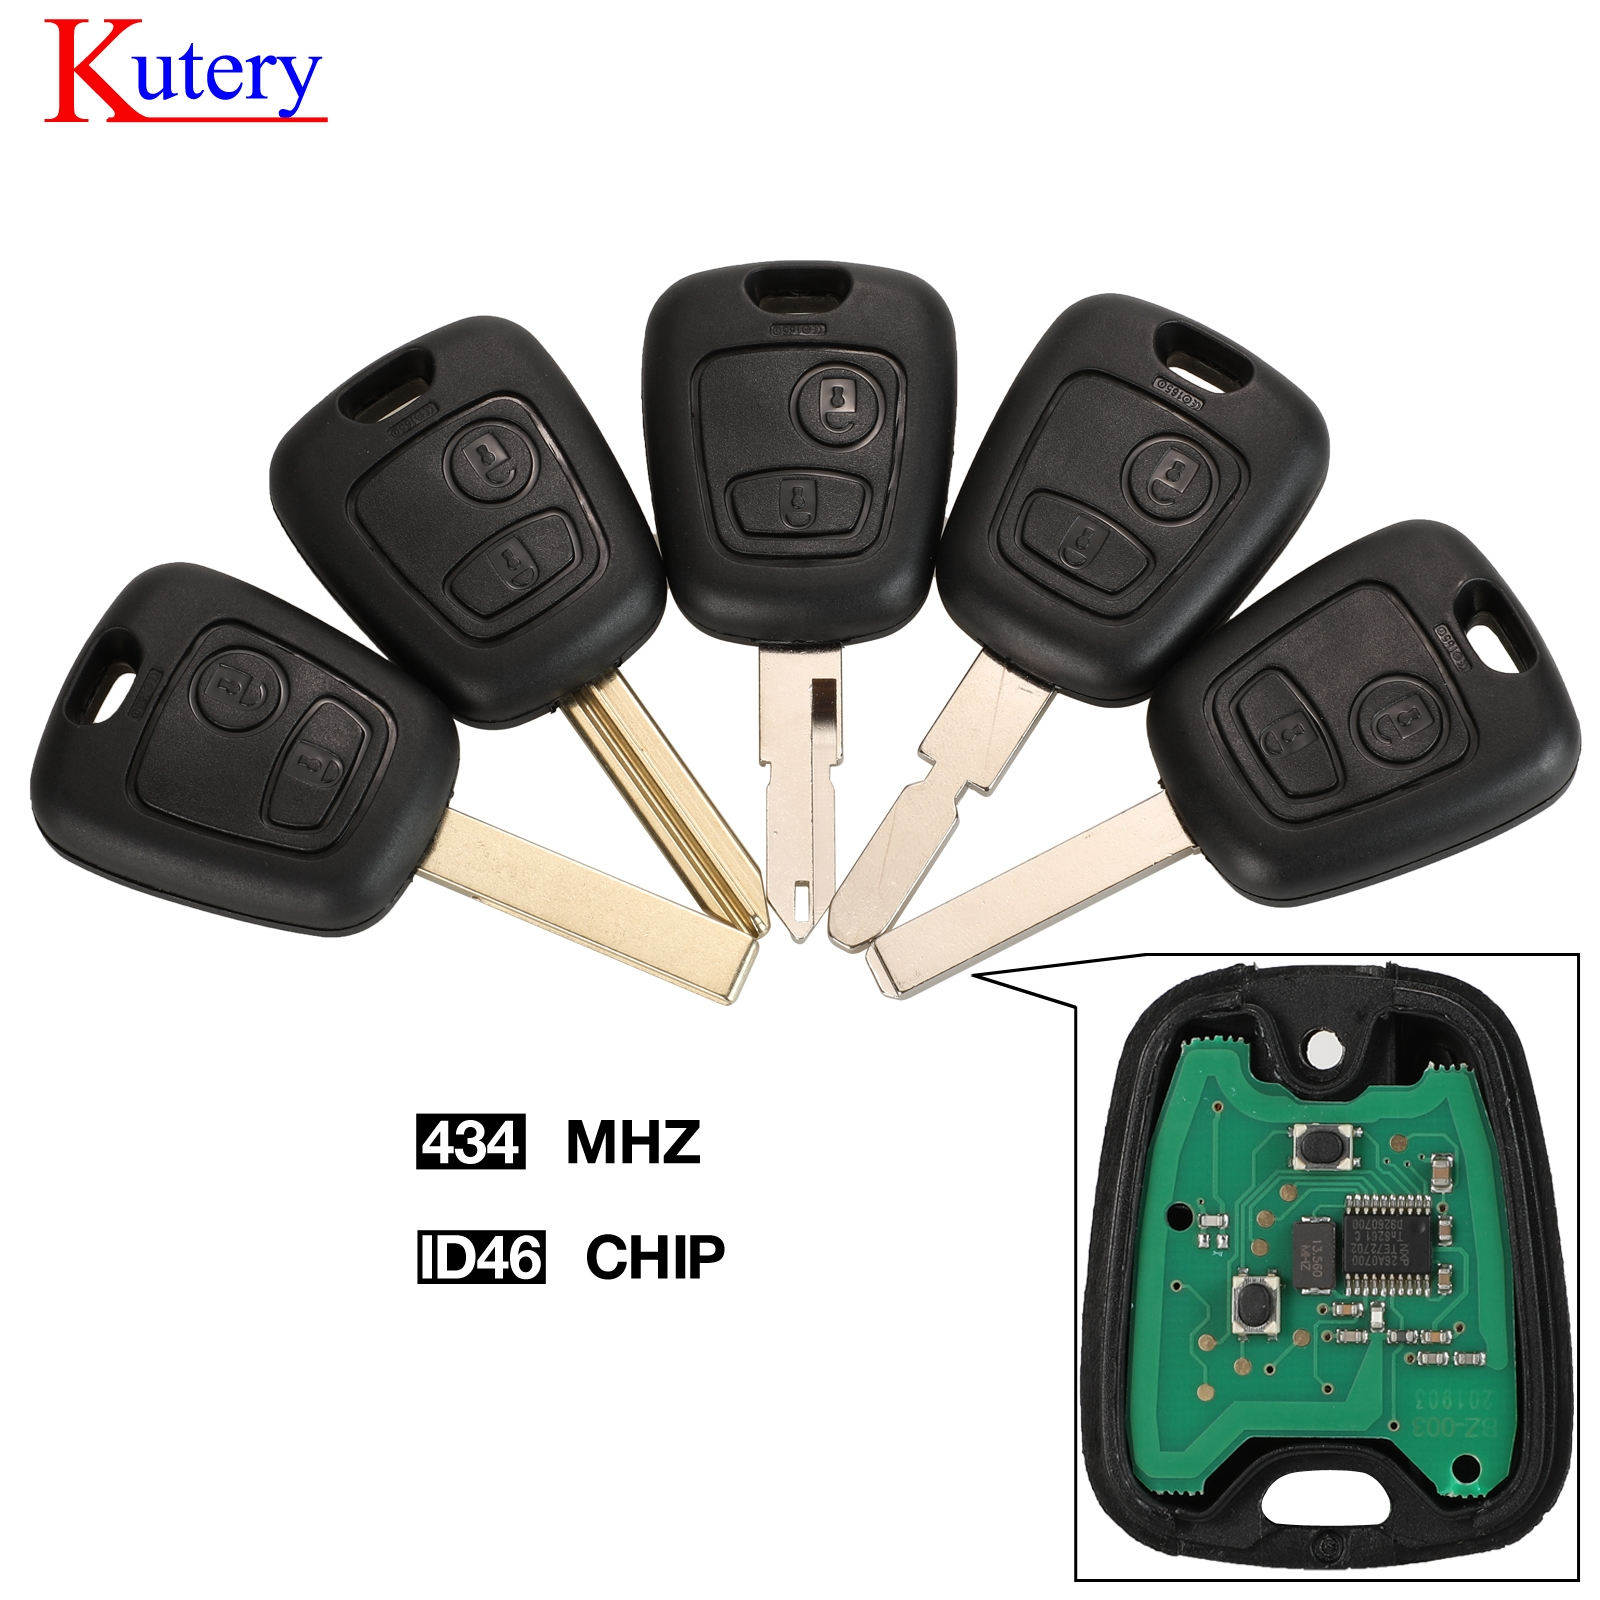 kutery Remote Car Key Fob For Citroen C1 C2 C3 C4 Saxo Picasso Xsara Picasso Peugeot 106 206 306 307 107 207 407 Partner image